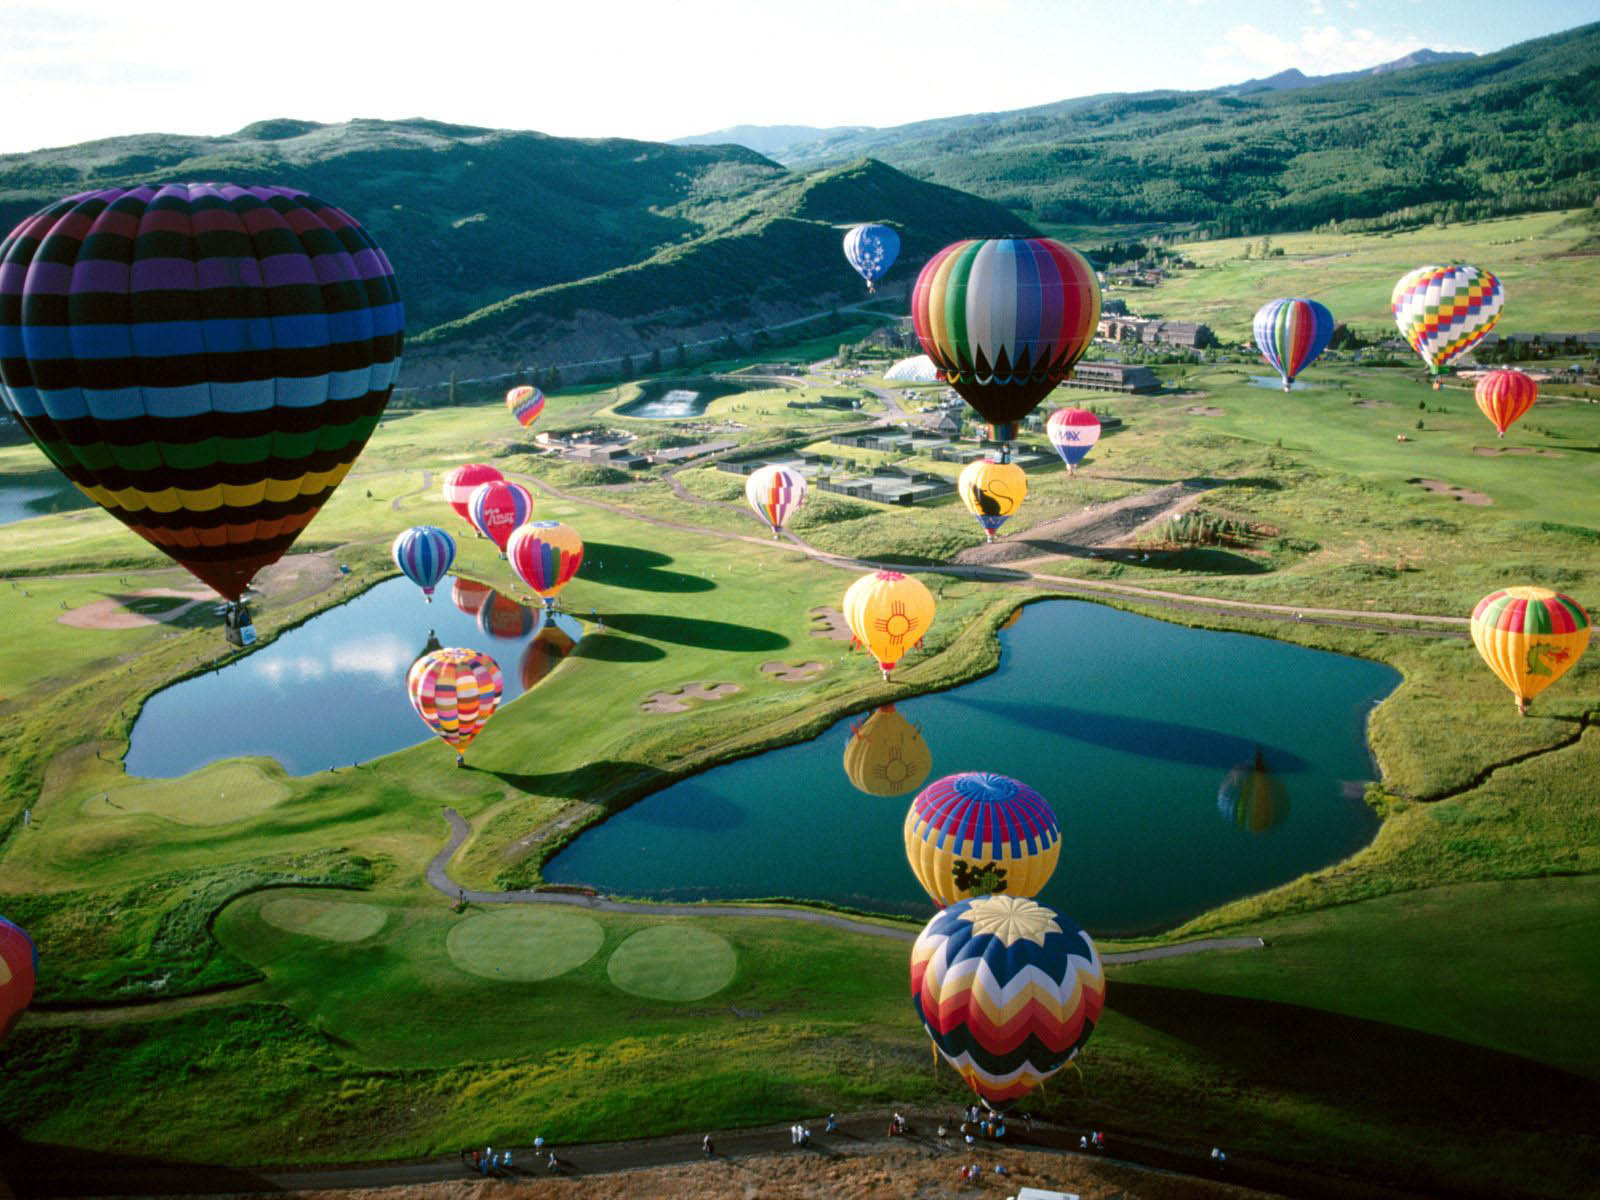 http://2.bp.blogspot.com/-luH129FUULM/UP_YYwHQBqI/AAAAAAAARbE/vAEuQwWAsyg/s1600/Hot+Air+Balloons+Wallpapers+04.jpg